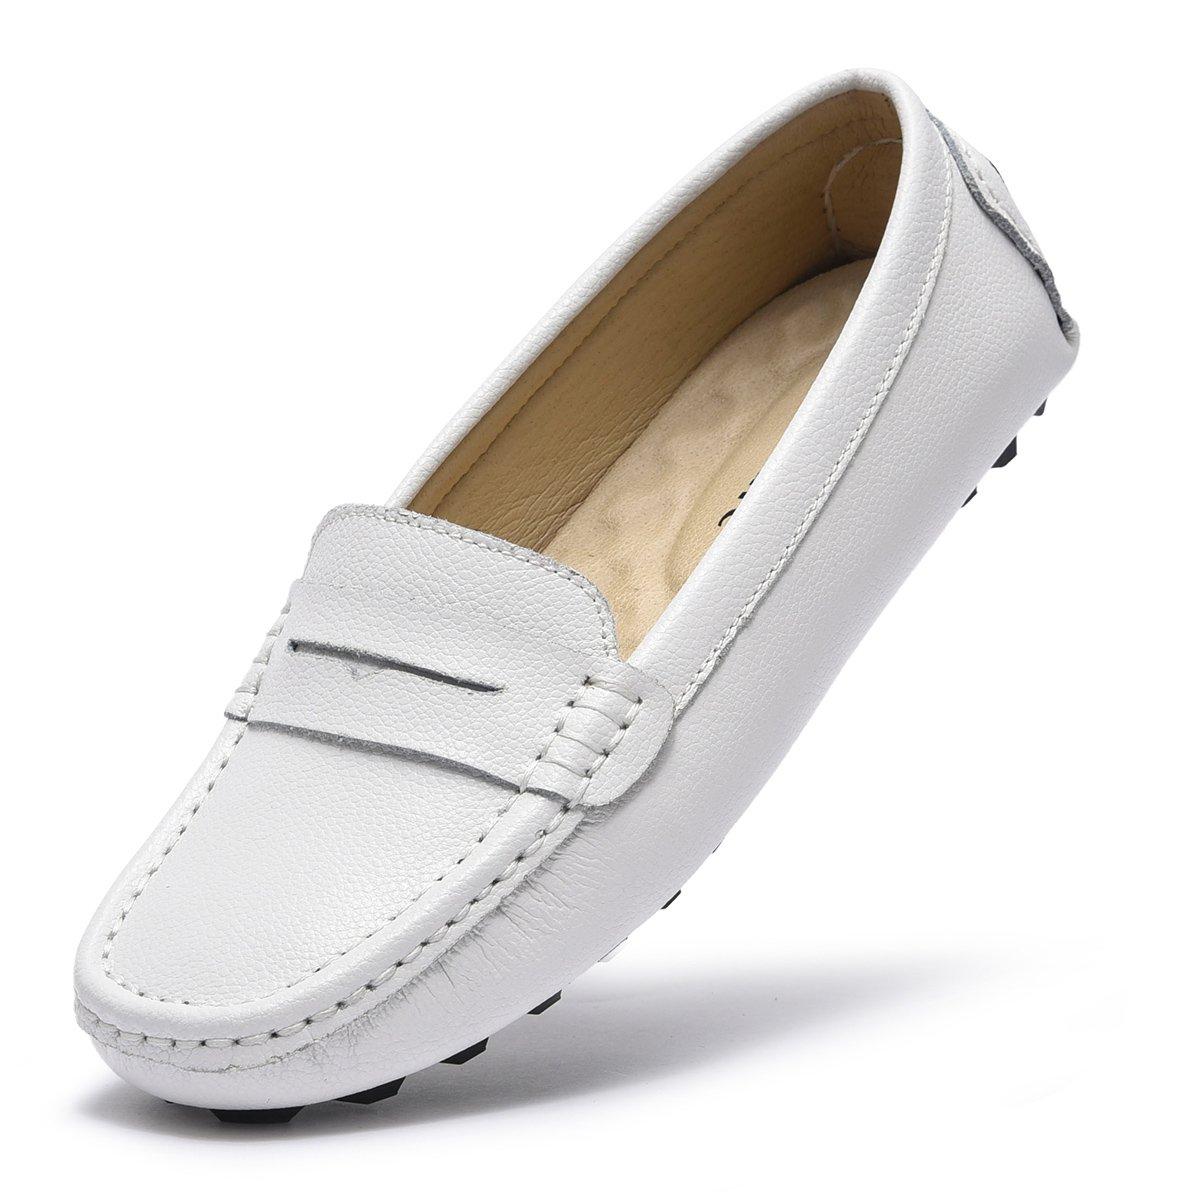 ARTISURE Women's Girls' Classic Handsewn White Genuine Leather Penny Loafers Driving Moccasins Casual Boat Shoes Slip On Fashion Office Comfort Flats 9 M US SKS-1221BAI90